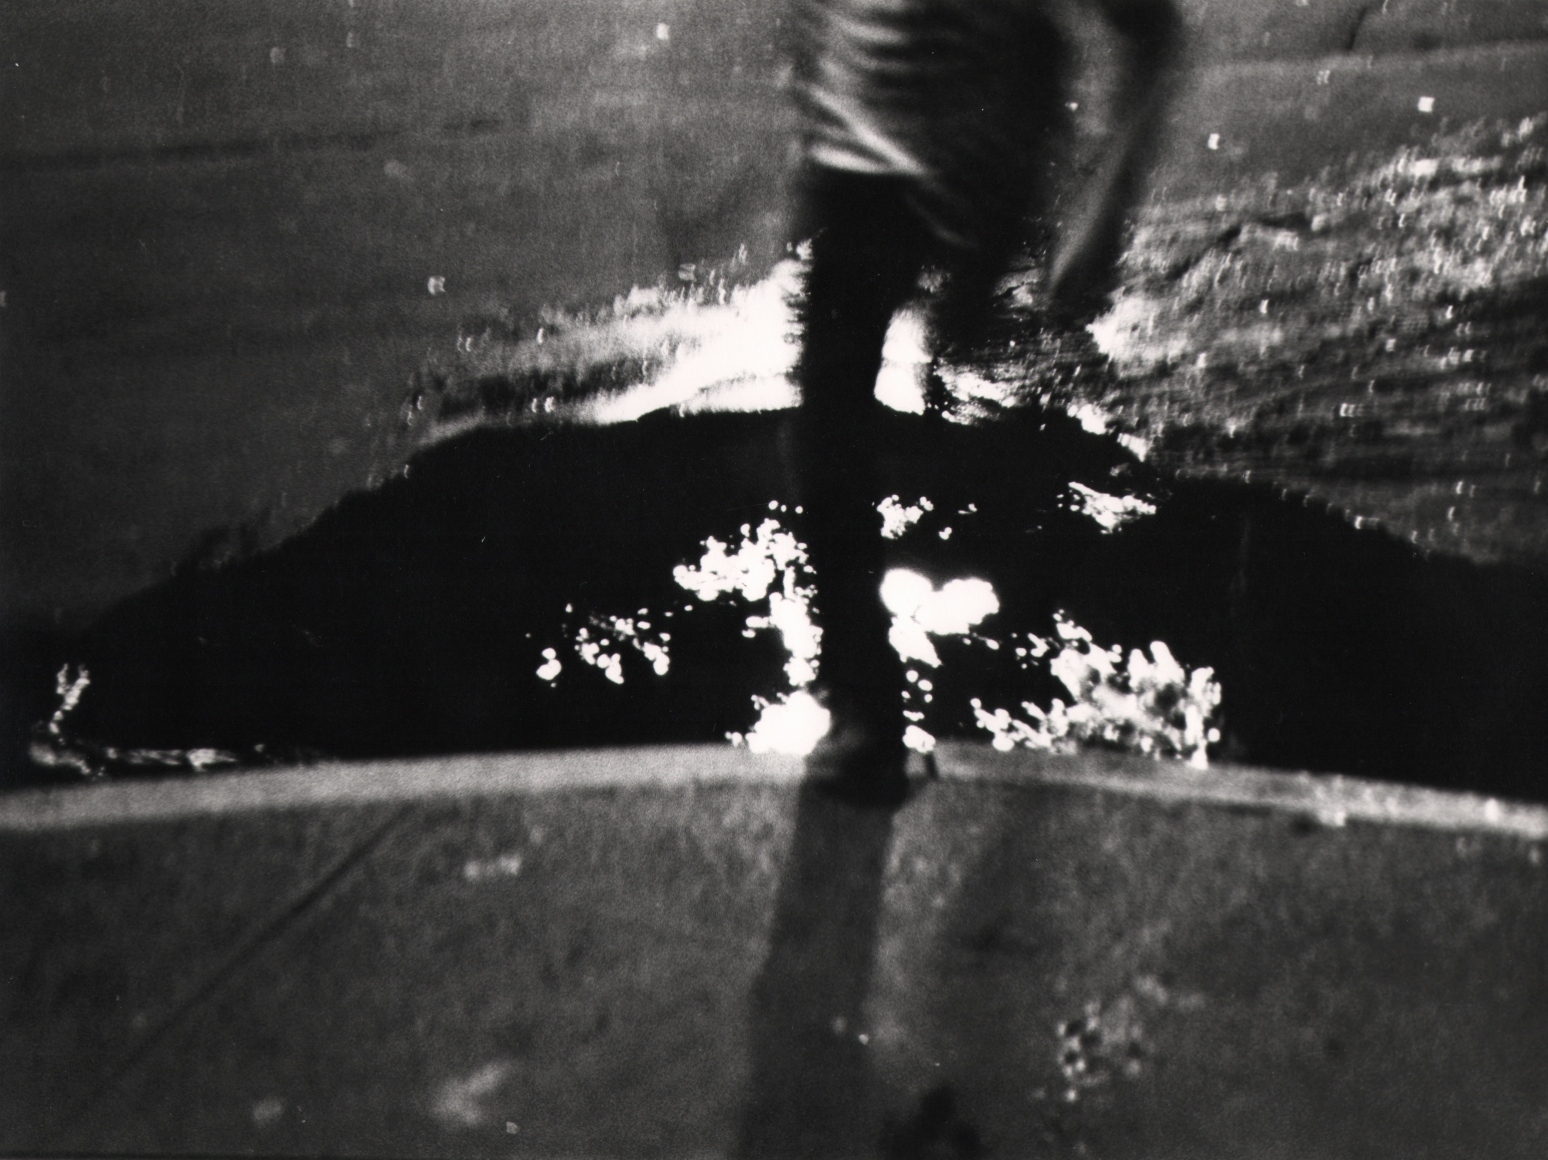 37. Beuford Smith, Untitled, c. 1970. Motion-blurred, dark image of the lower body of a boy jumping over a puddle.